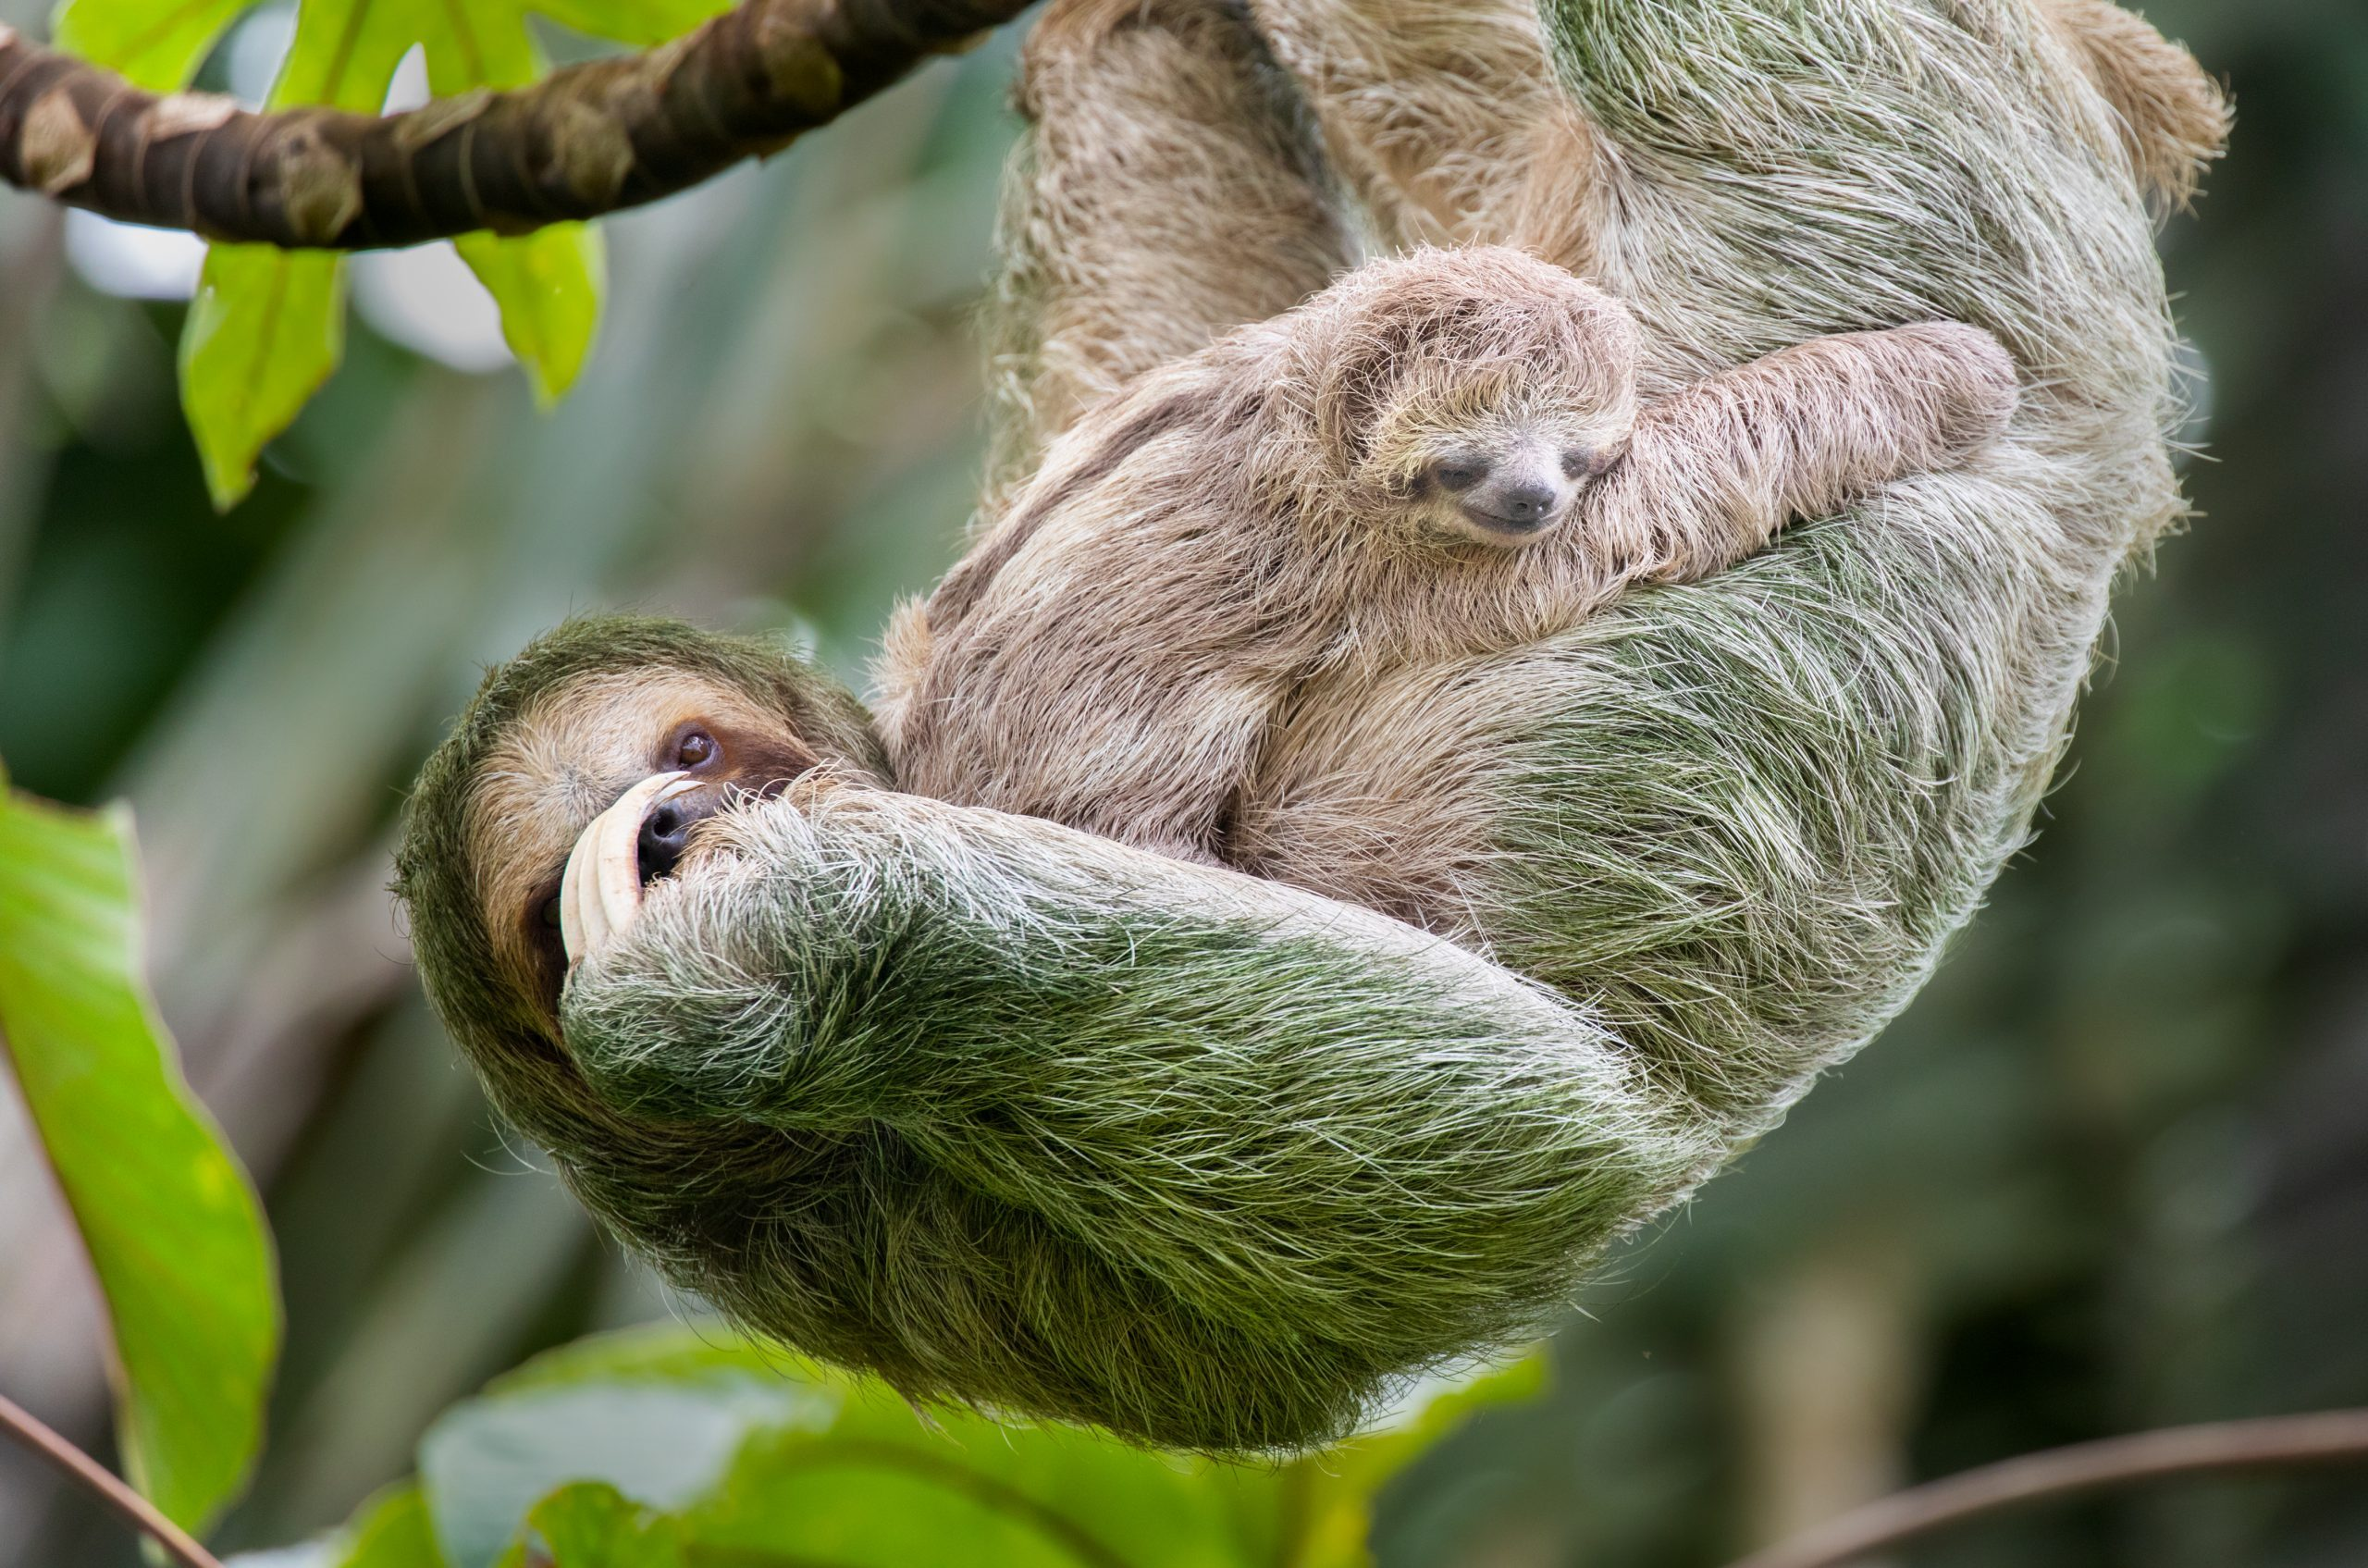 Brown-throated three-toed sloth mother and baby hanging in a treetop, Costa Rica